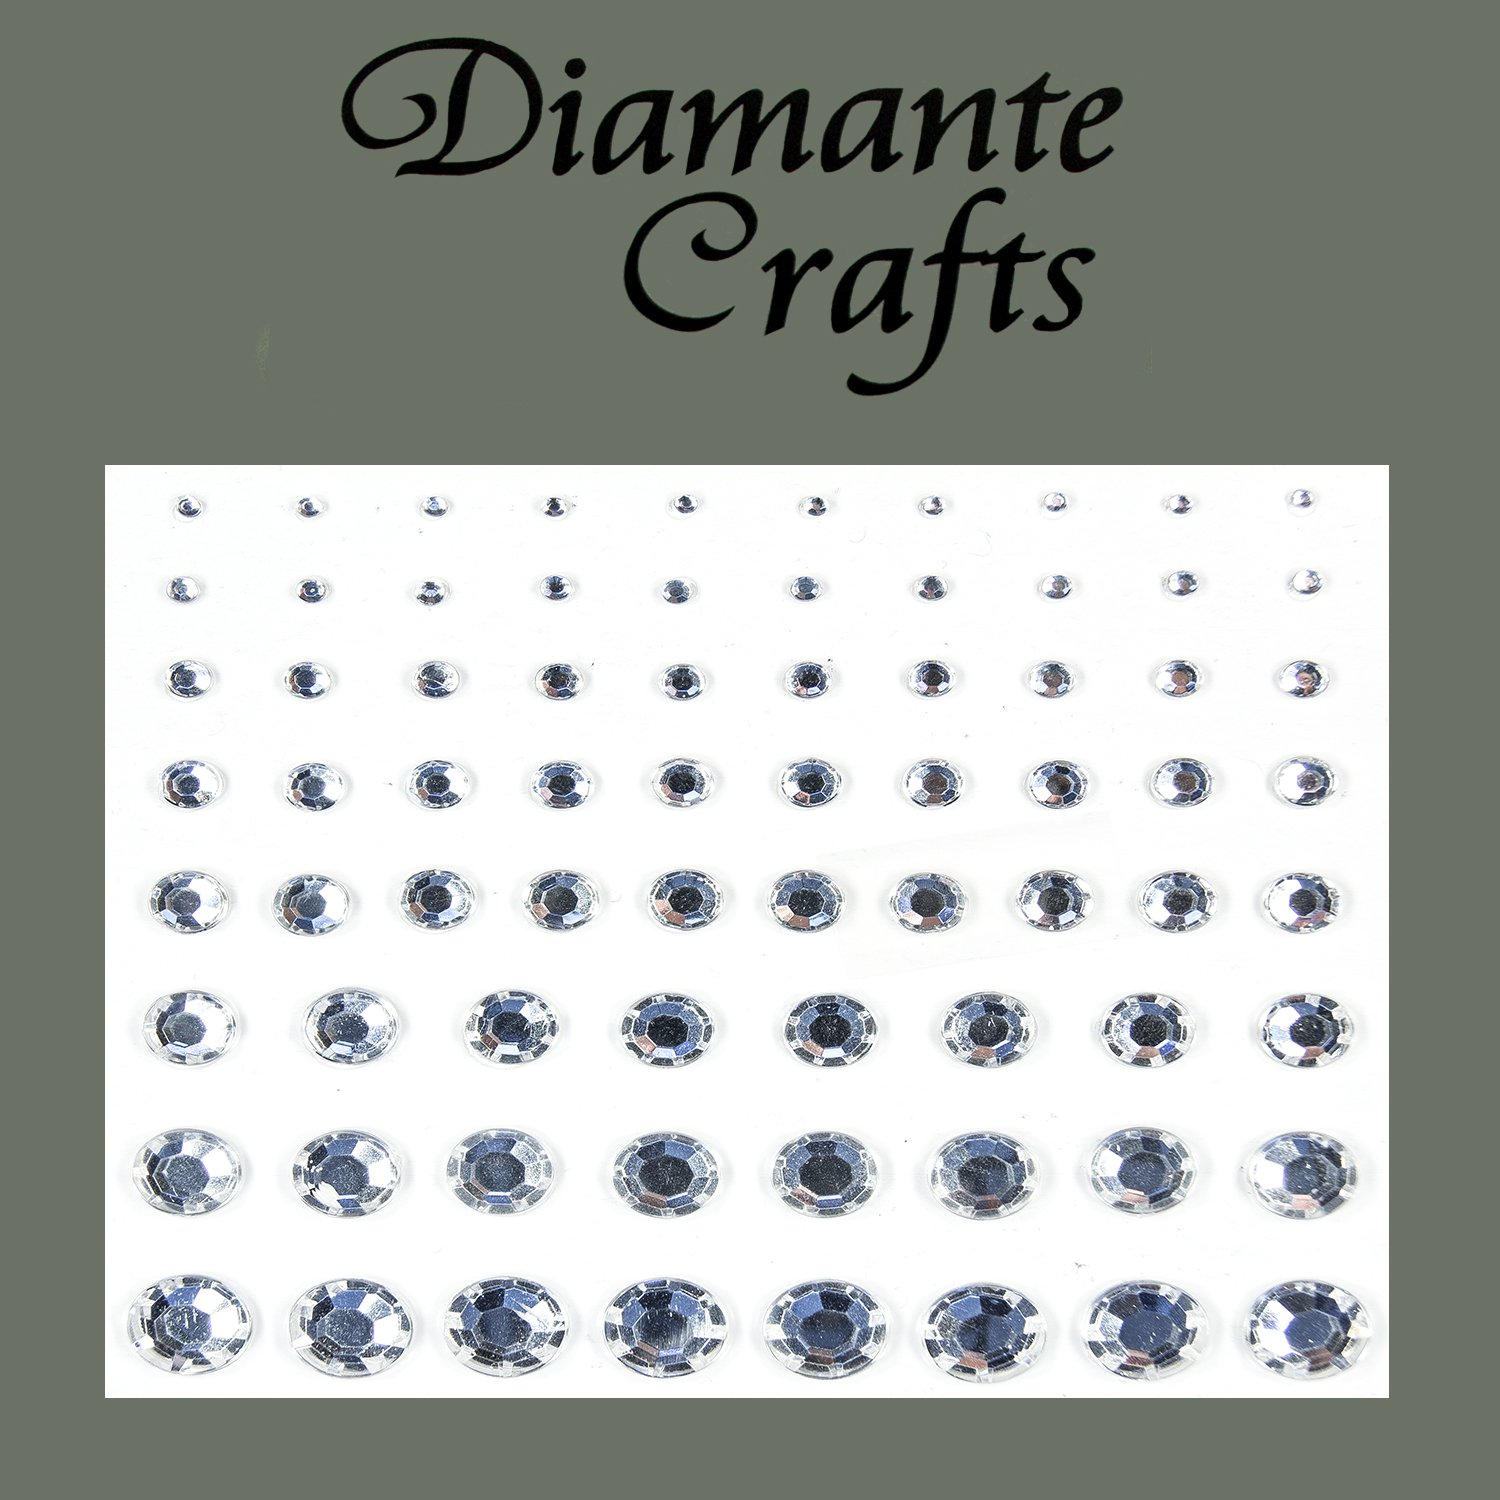 1mm - 8mm Clear Diamante Self Adhesive Rhinestone Vajazzle Body Nail Gems - created exclusively for Diamante Crafts